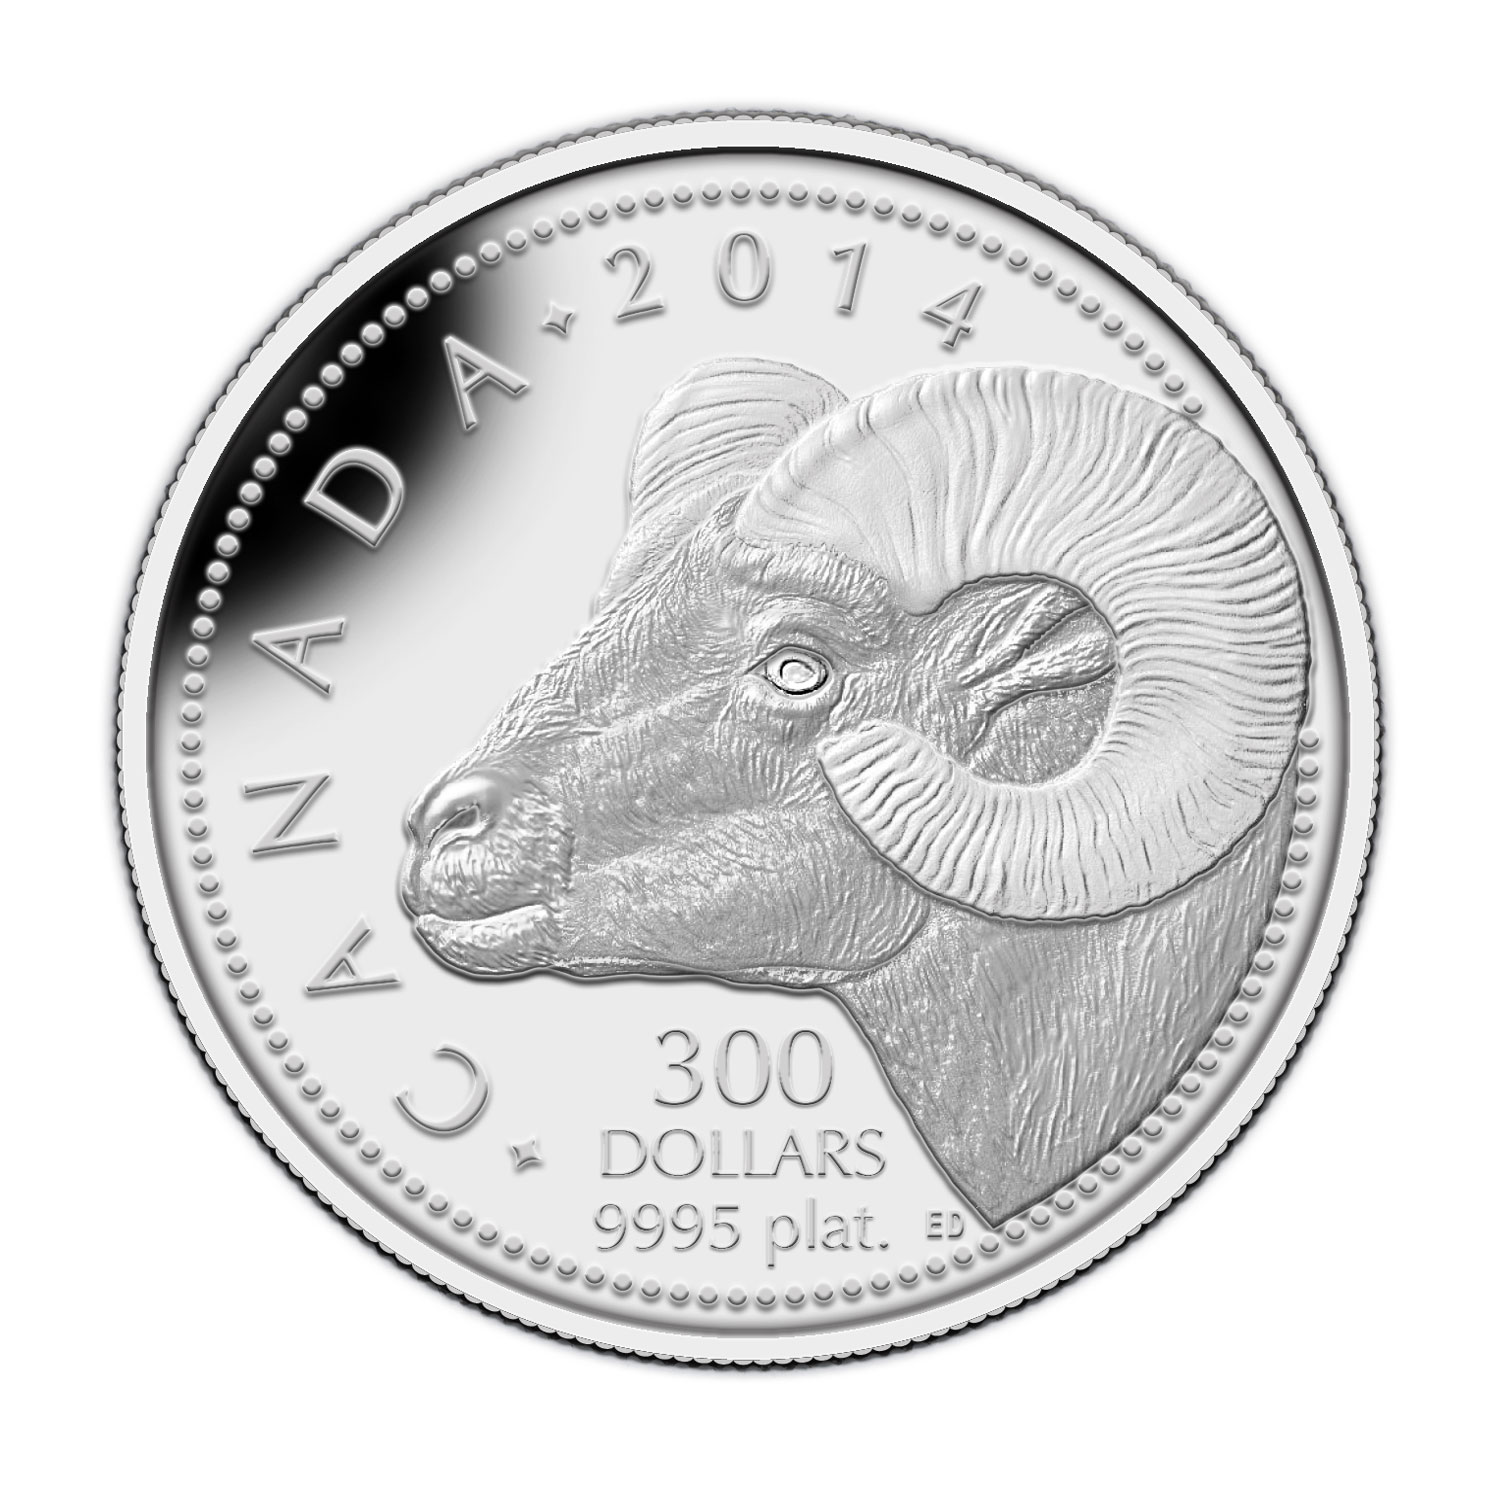 2014 1 oz Prf Platinum Canadian $300 Rocky Mountain Bighorn Sheep